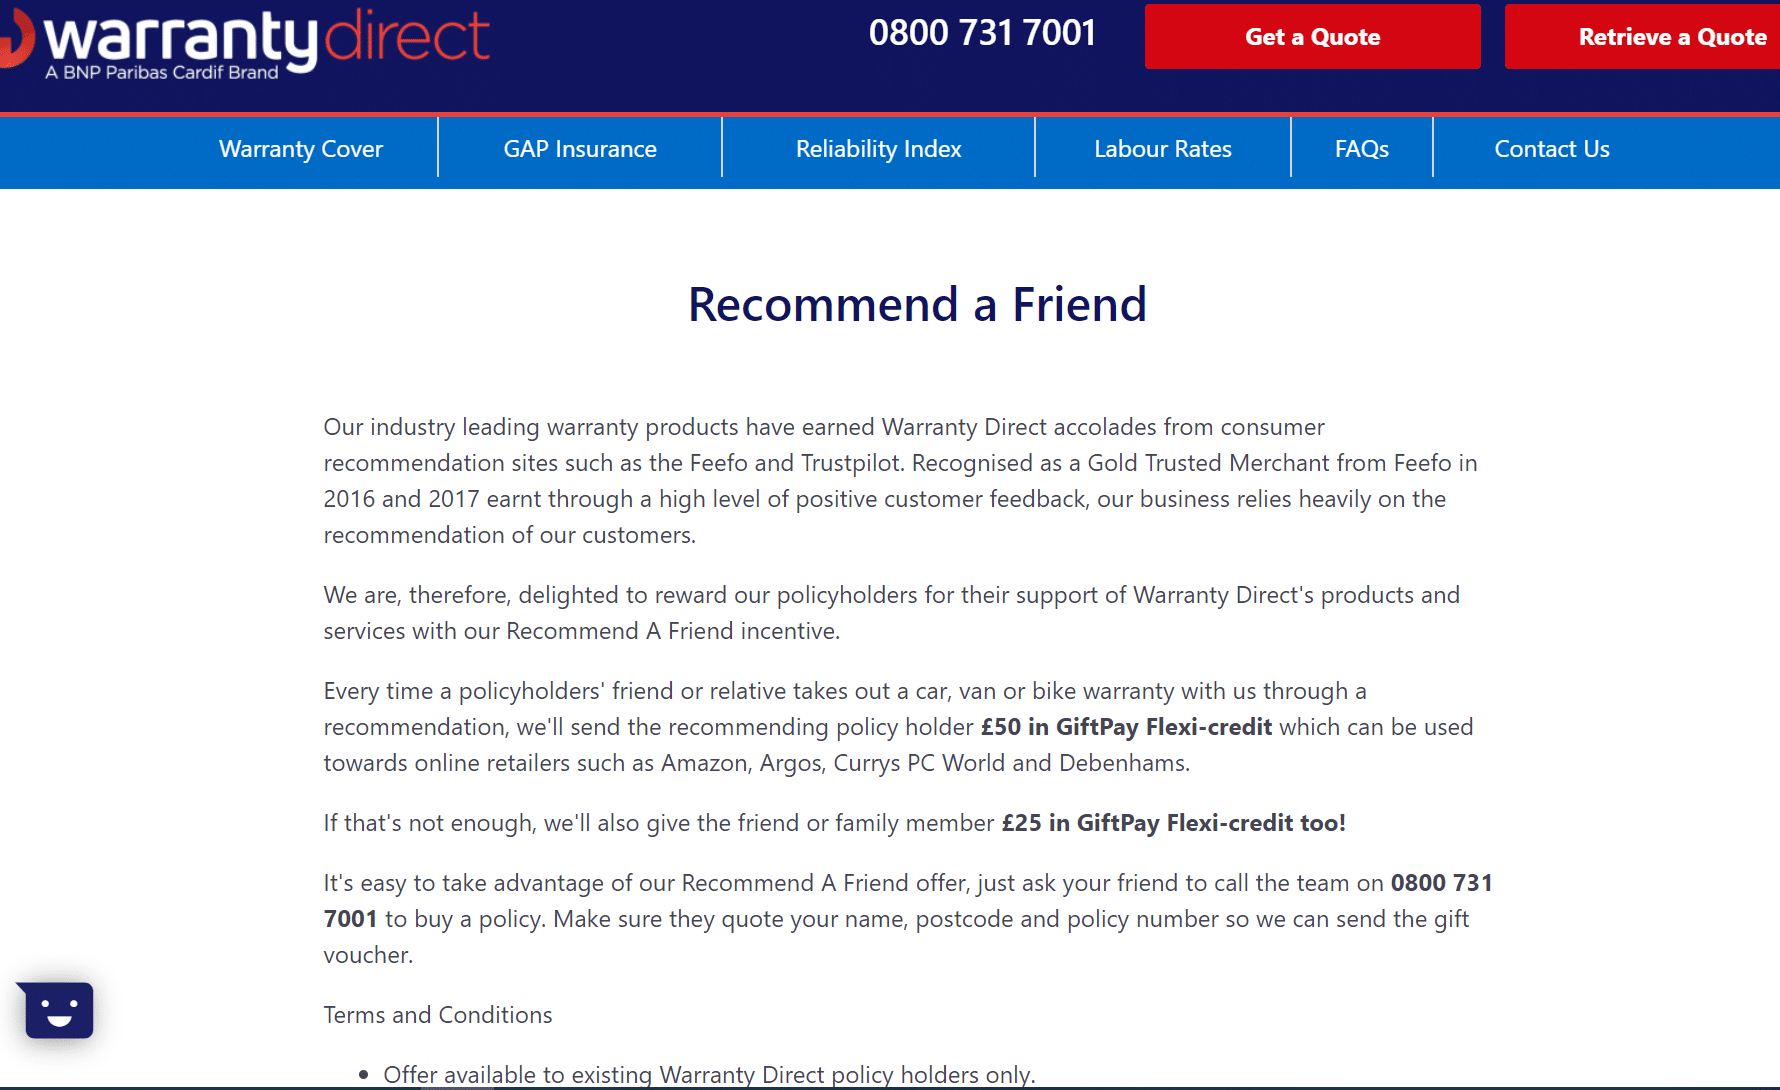 Warranty Direct referral code